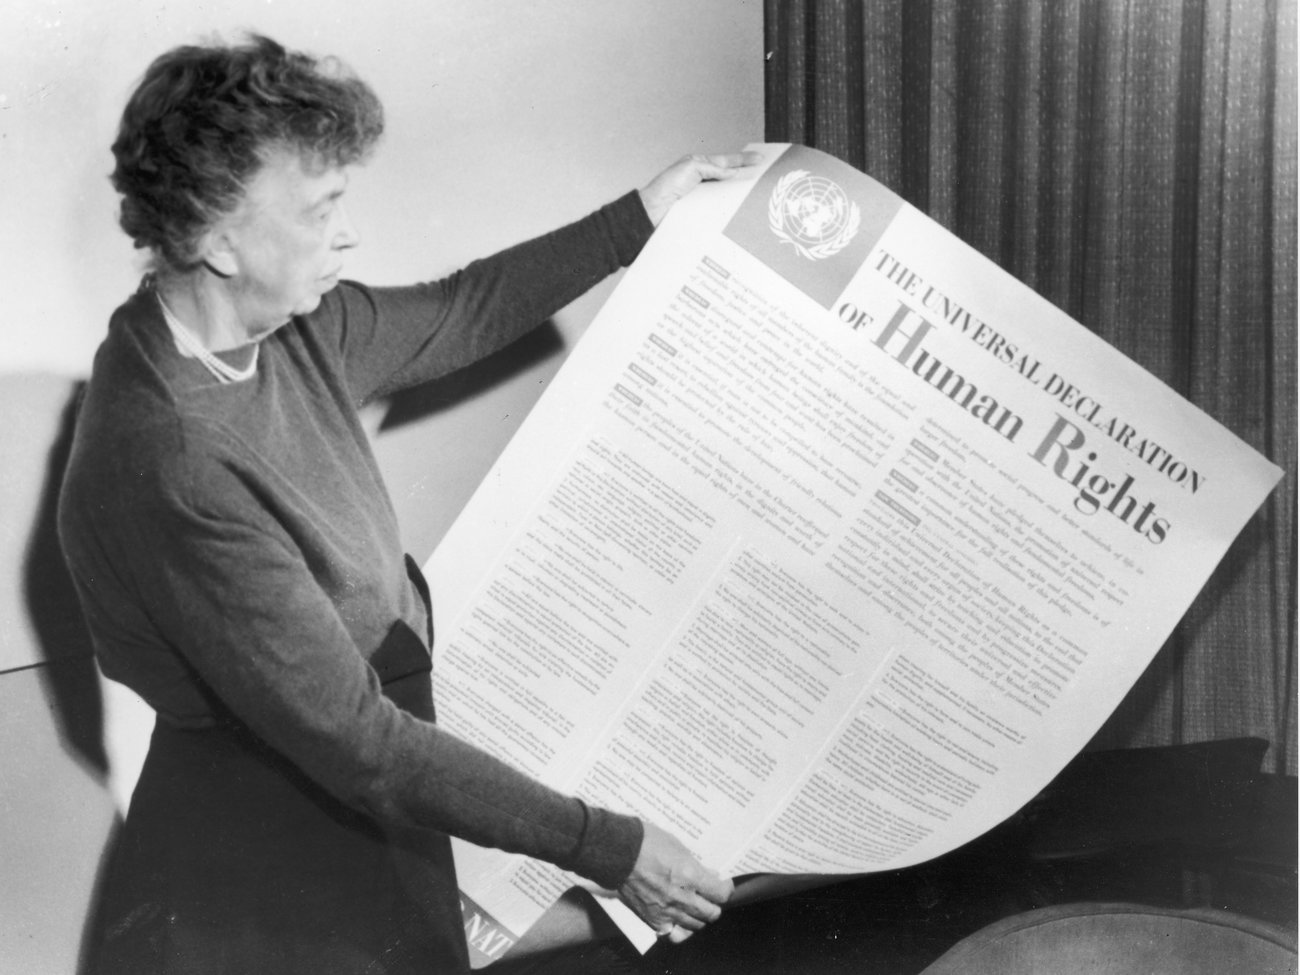 Eleanor Roosevelt holds up a copy of The Universal Declaration of Human Rights, adopted by the United Nations in December 1948.